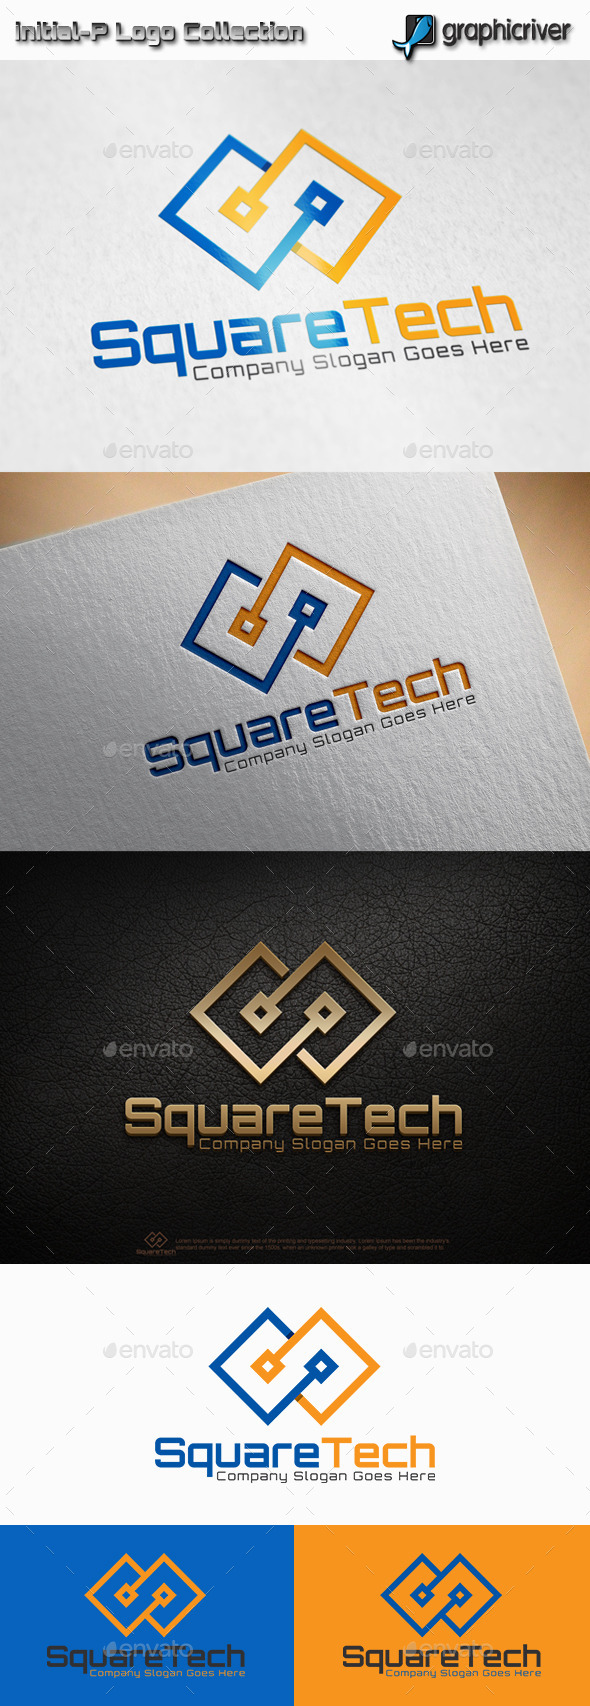 GraphicRiver Square Tech Logo 11441533